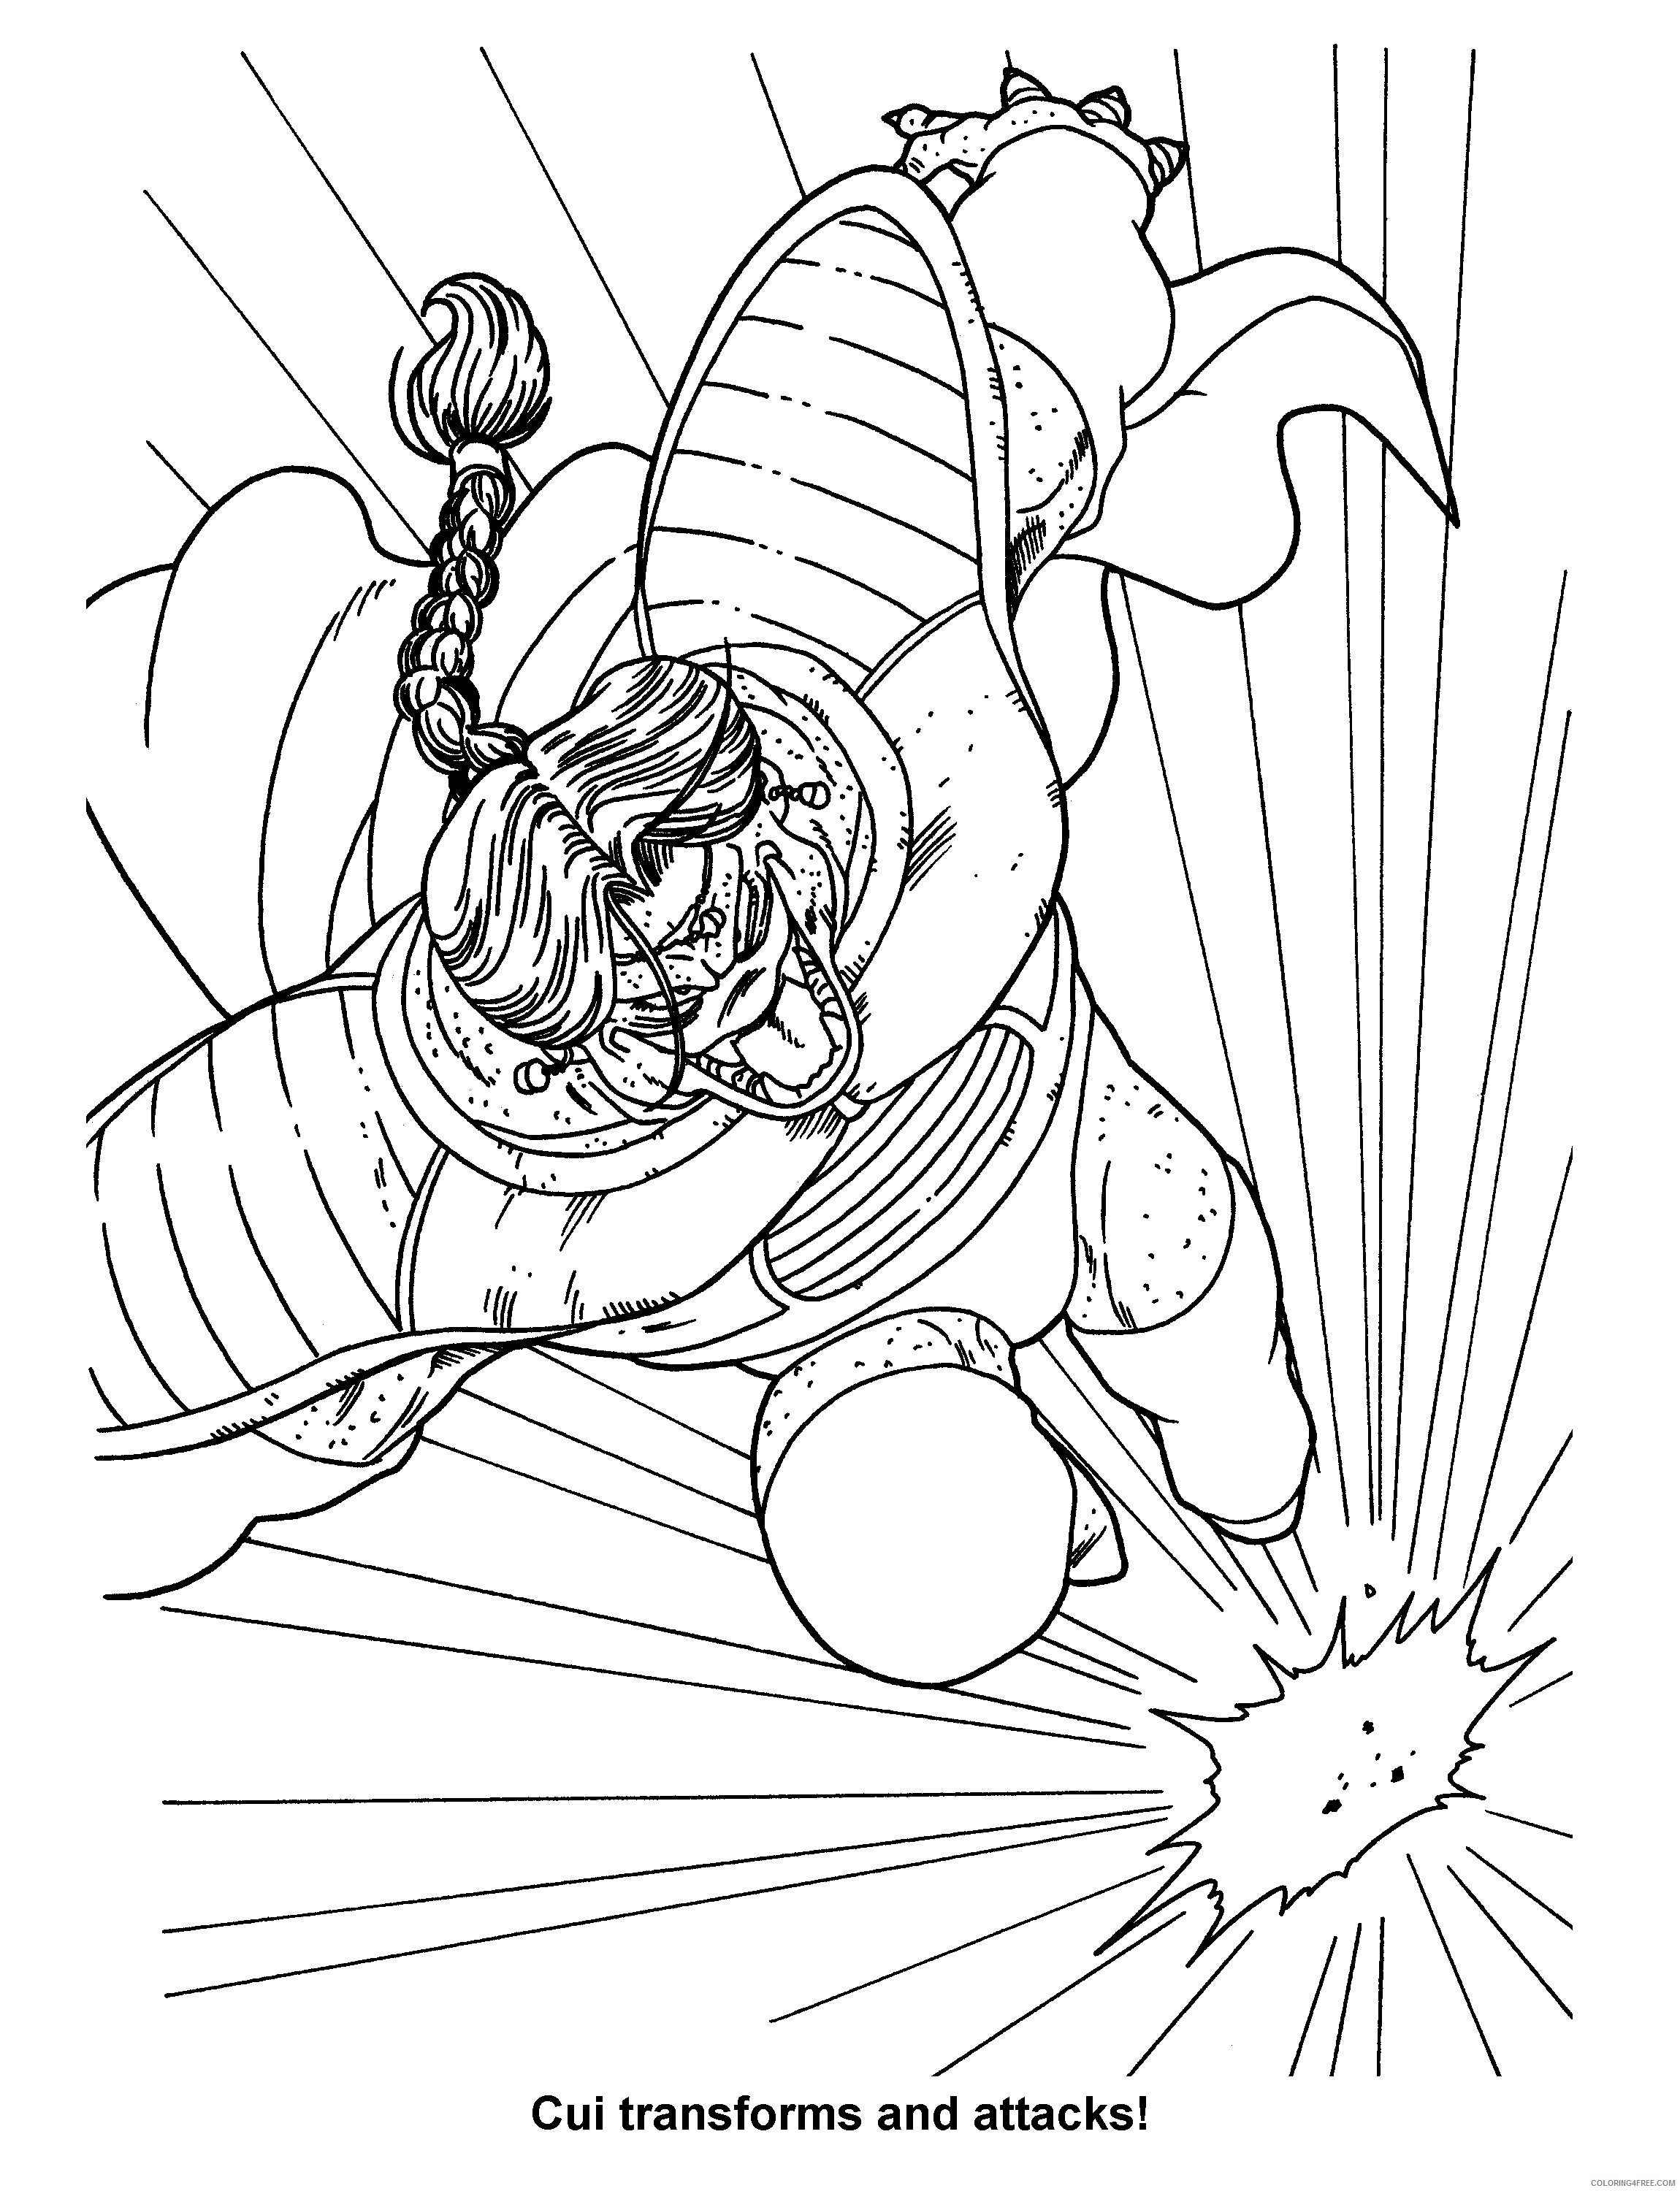 009 dragon ball z cui transforms and attacks Printable Coloring4free